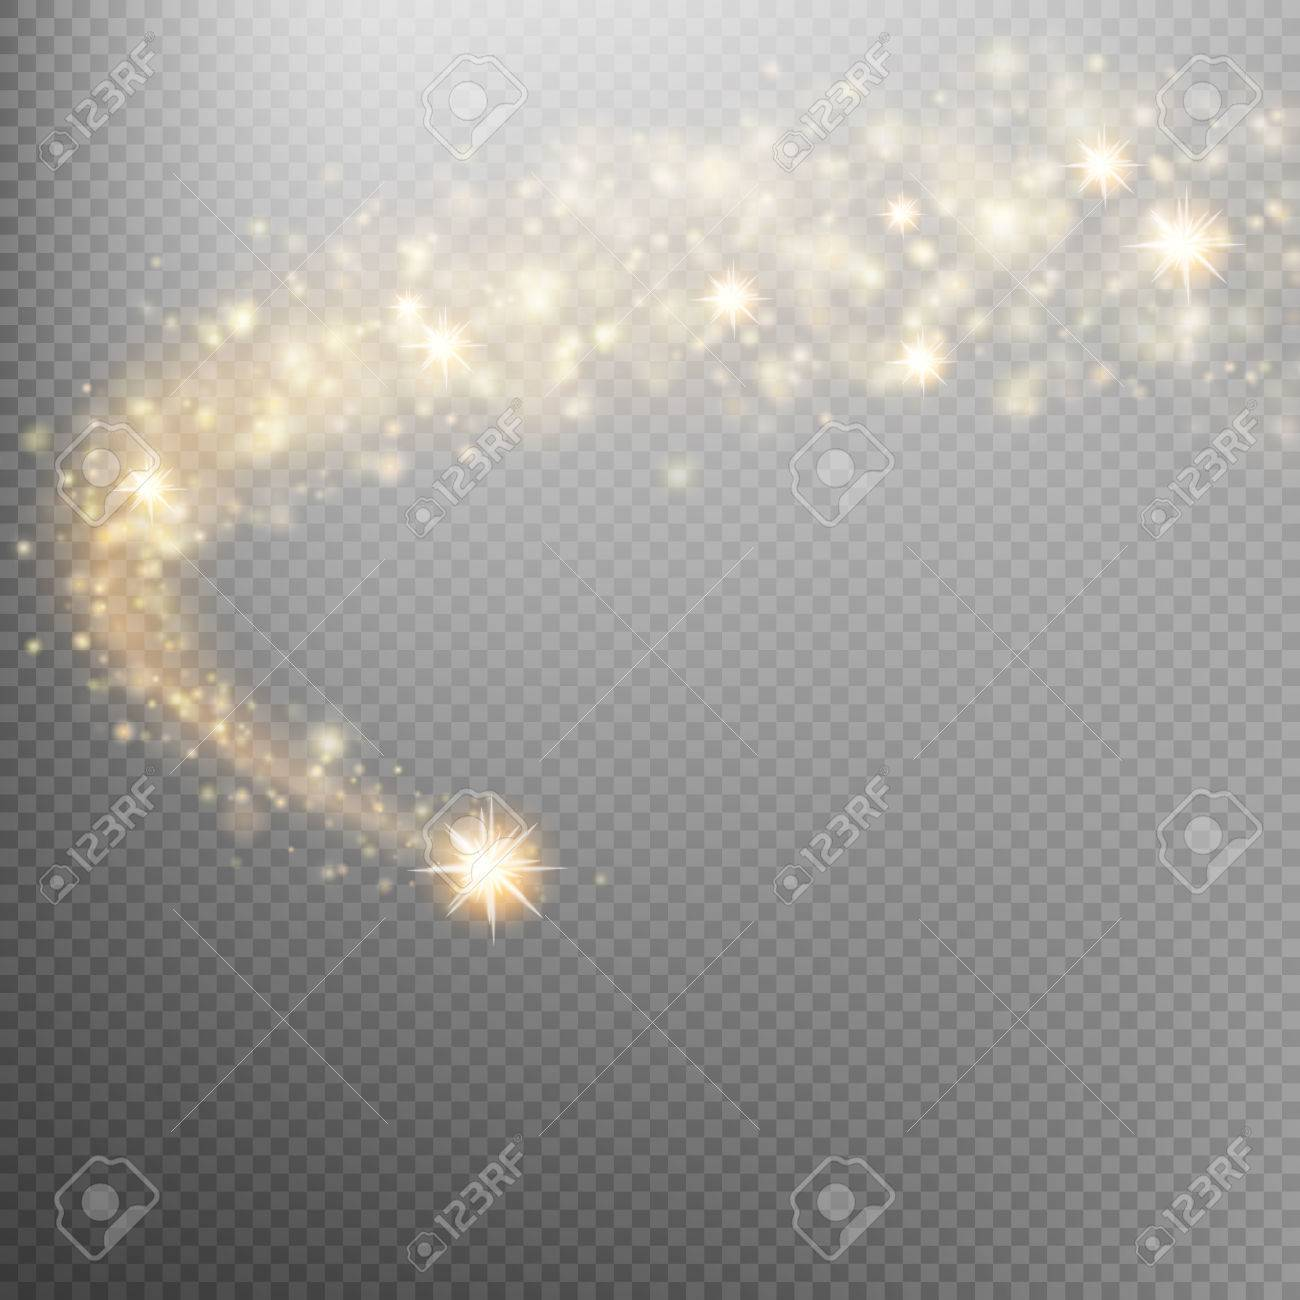 Golden sparkling falling star. Cosmic glittering wave. Gold glittering stars dust trail sparkling particles on transparent background. Space comet tail. EPS 10 vector file included - 67603926